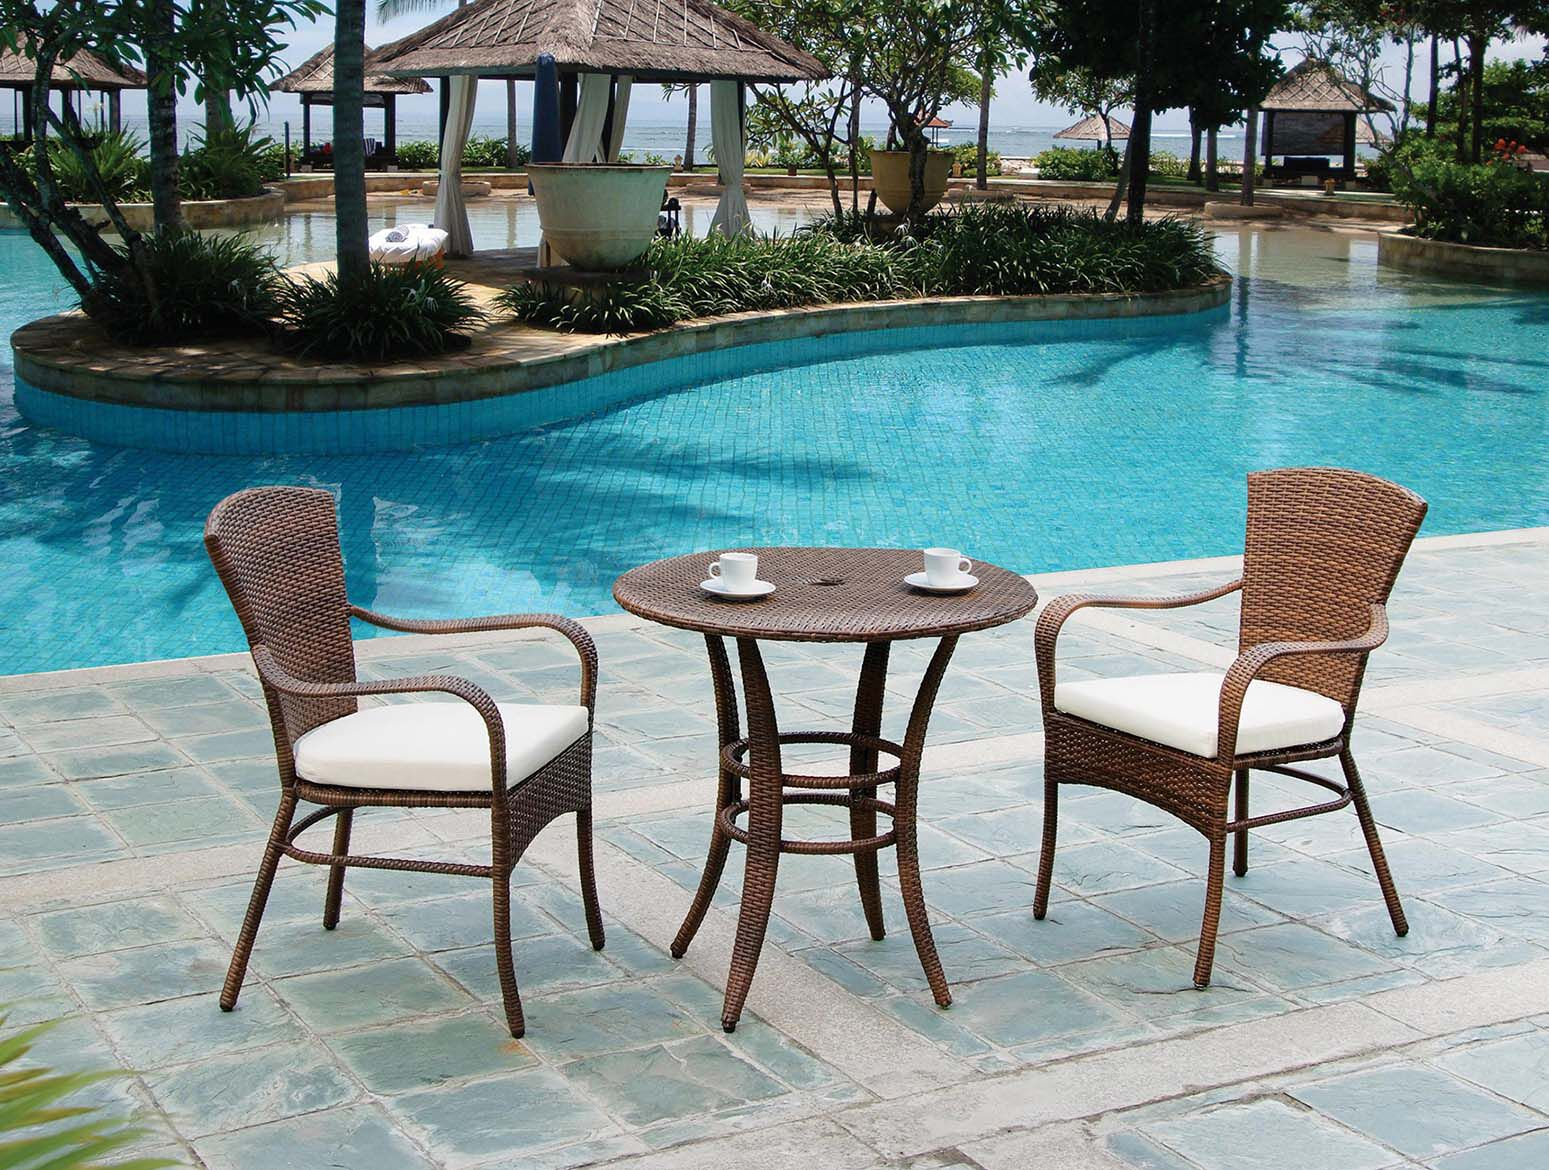 Key Biscayne 3 Piece Bistro Set with Cushions Color: Canvas Melon